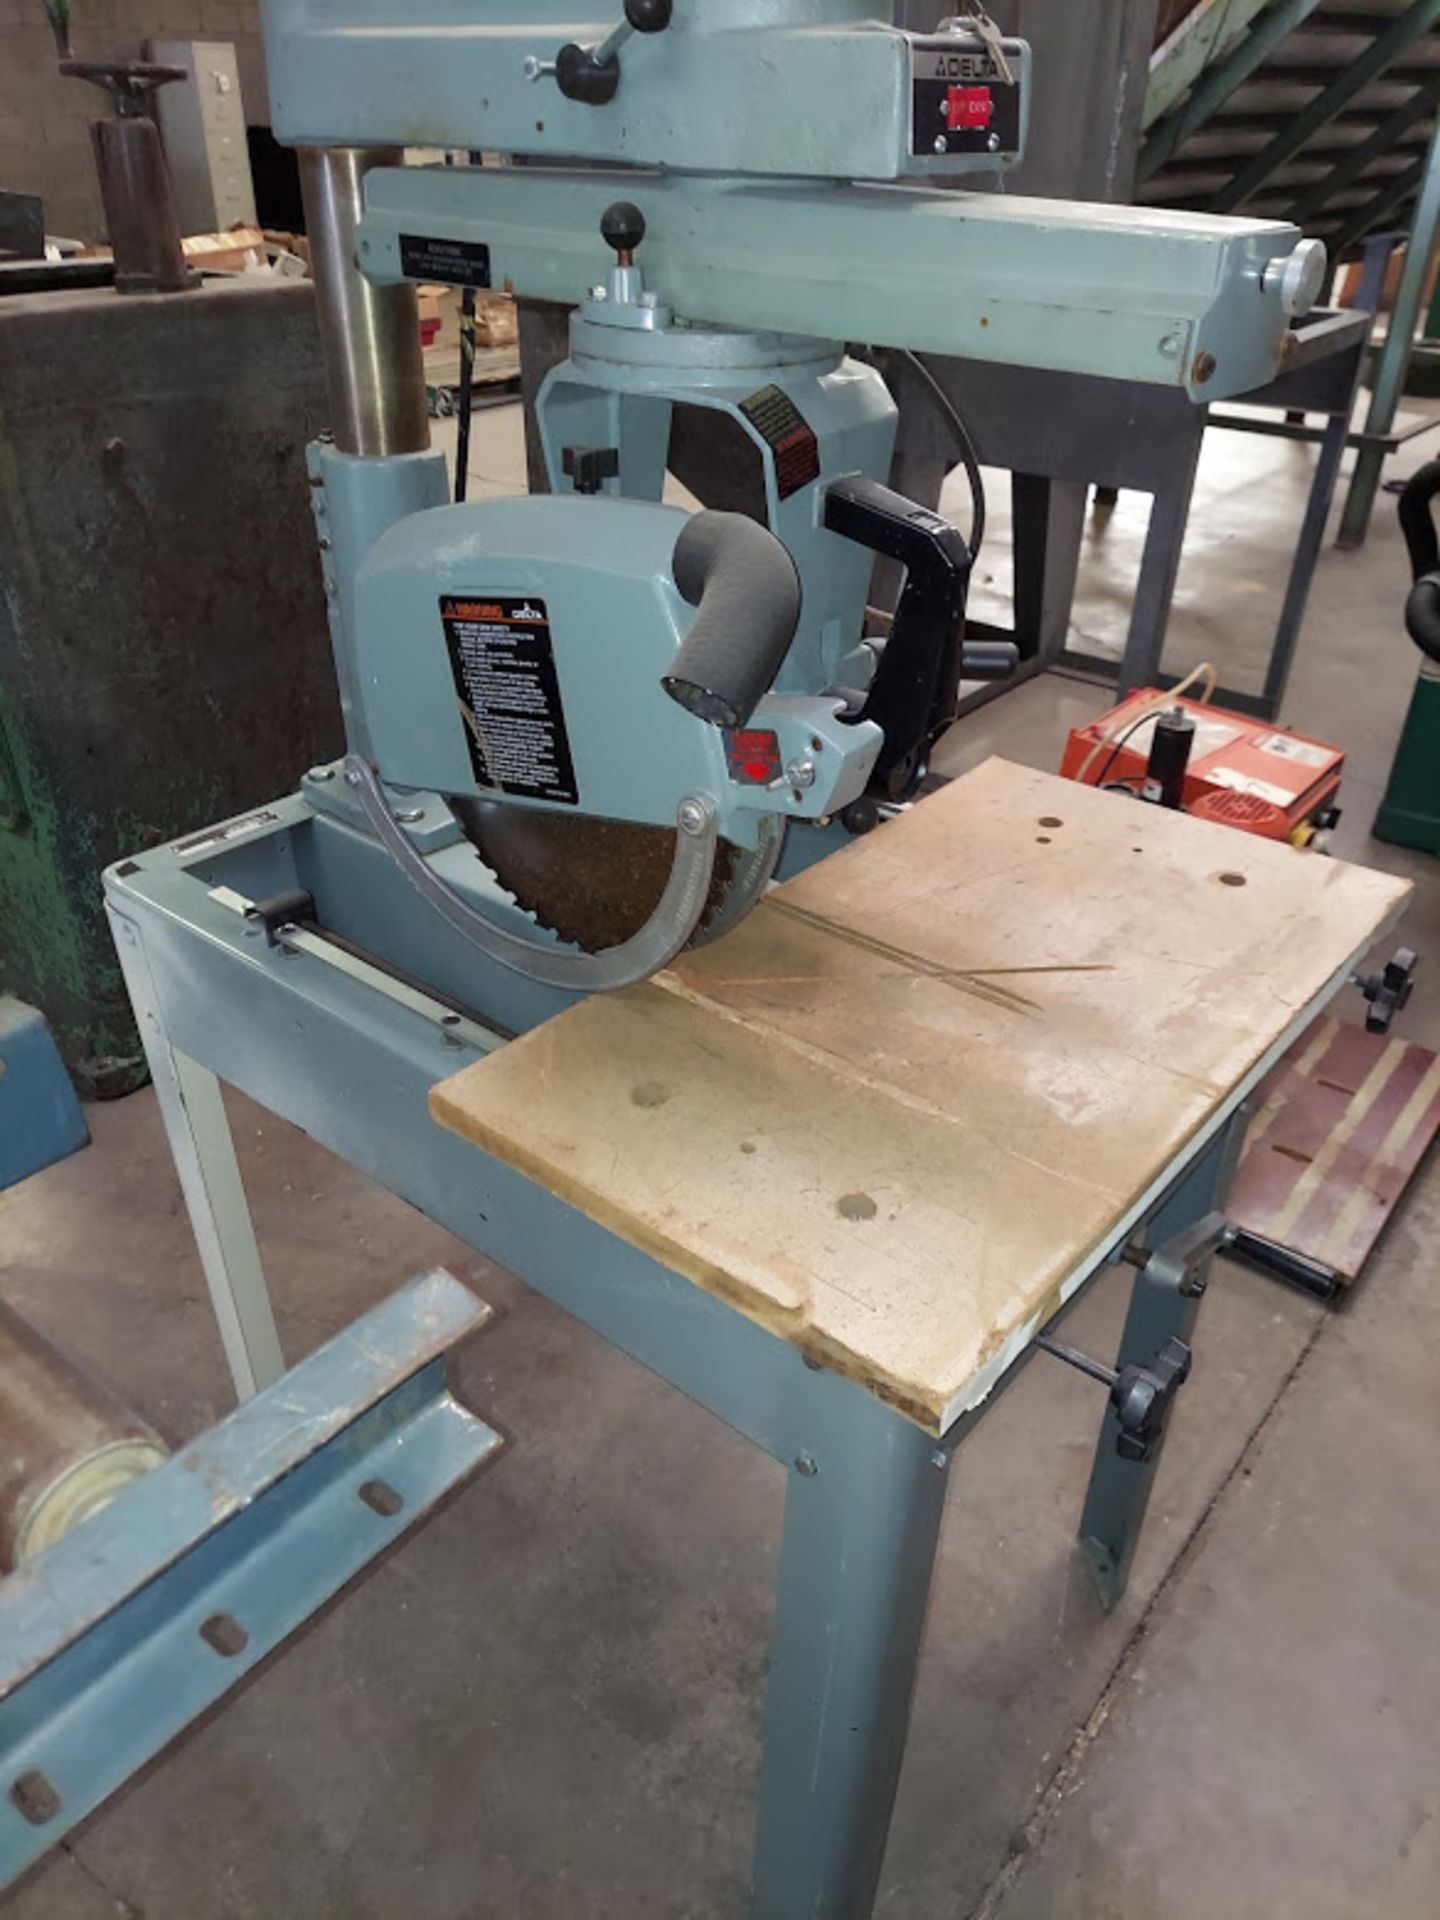 """Delta 12"""" Radial Arm Saw, Model #33-890 115/230 Volts 1 Phase Motor - Image 2 of 3"""